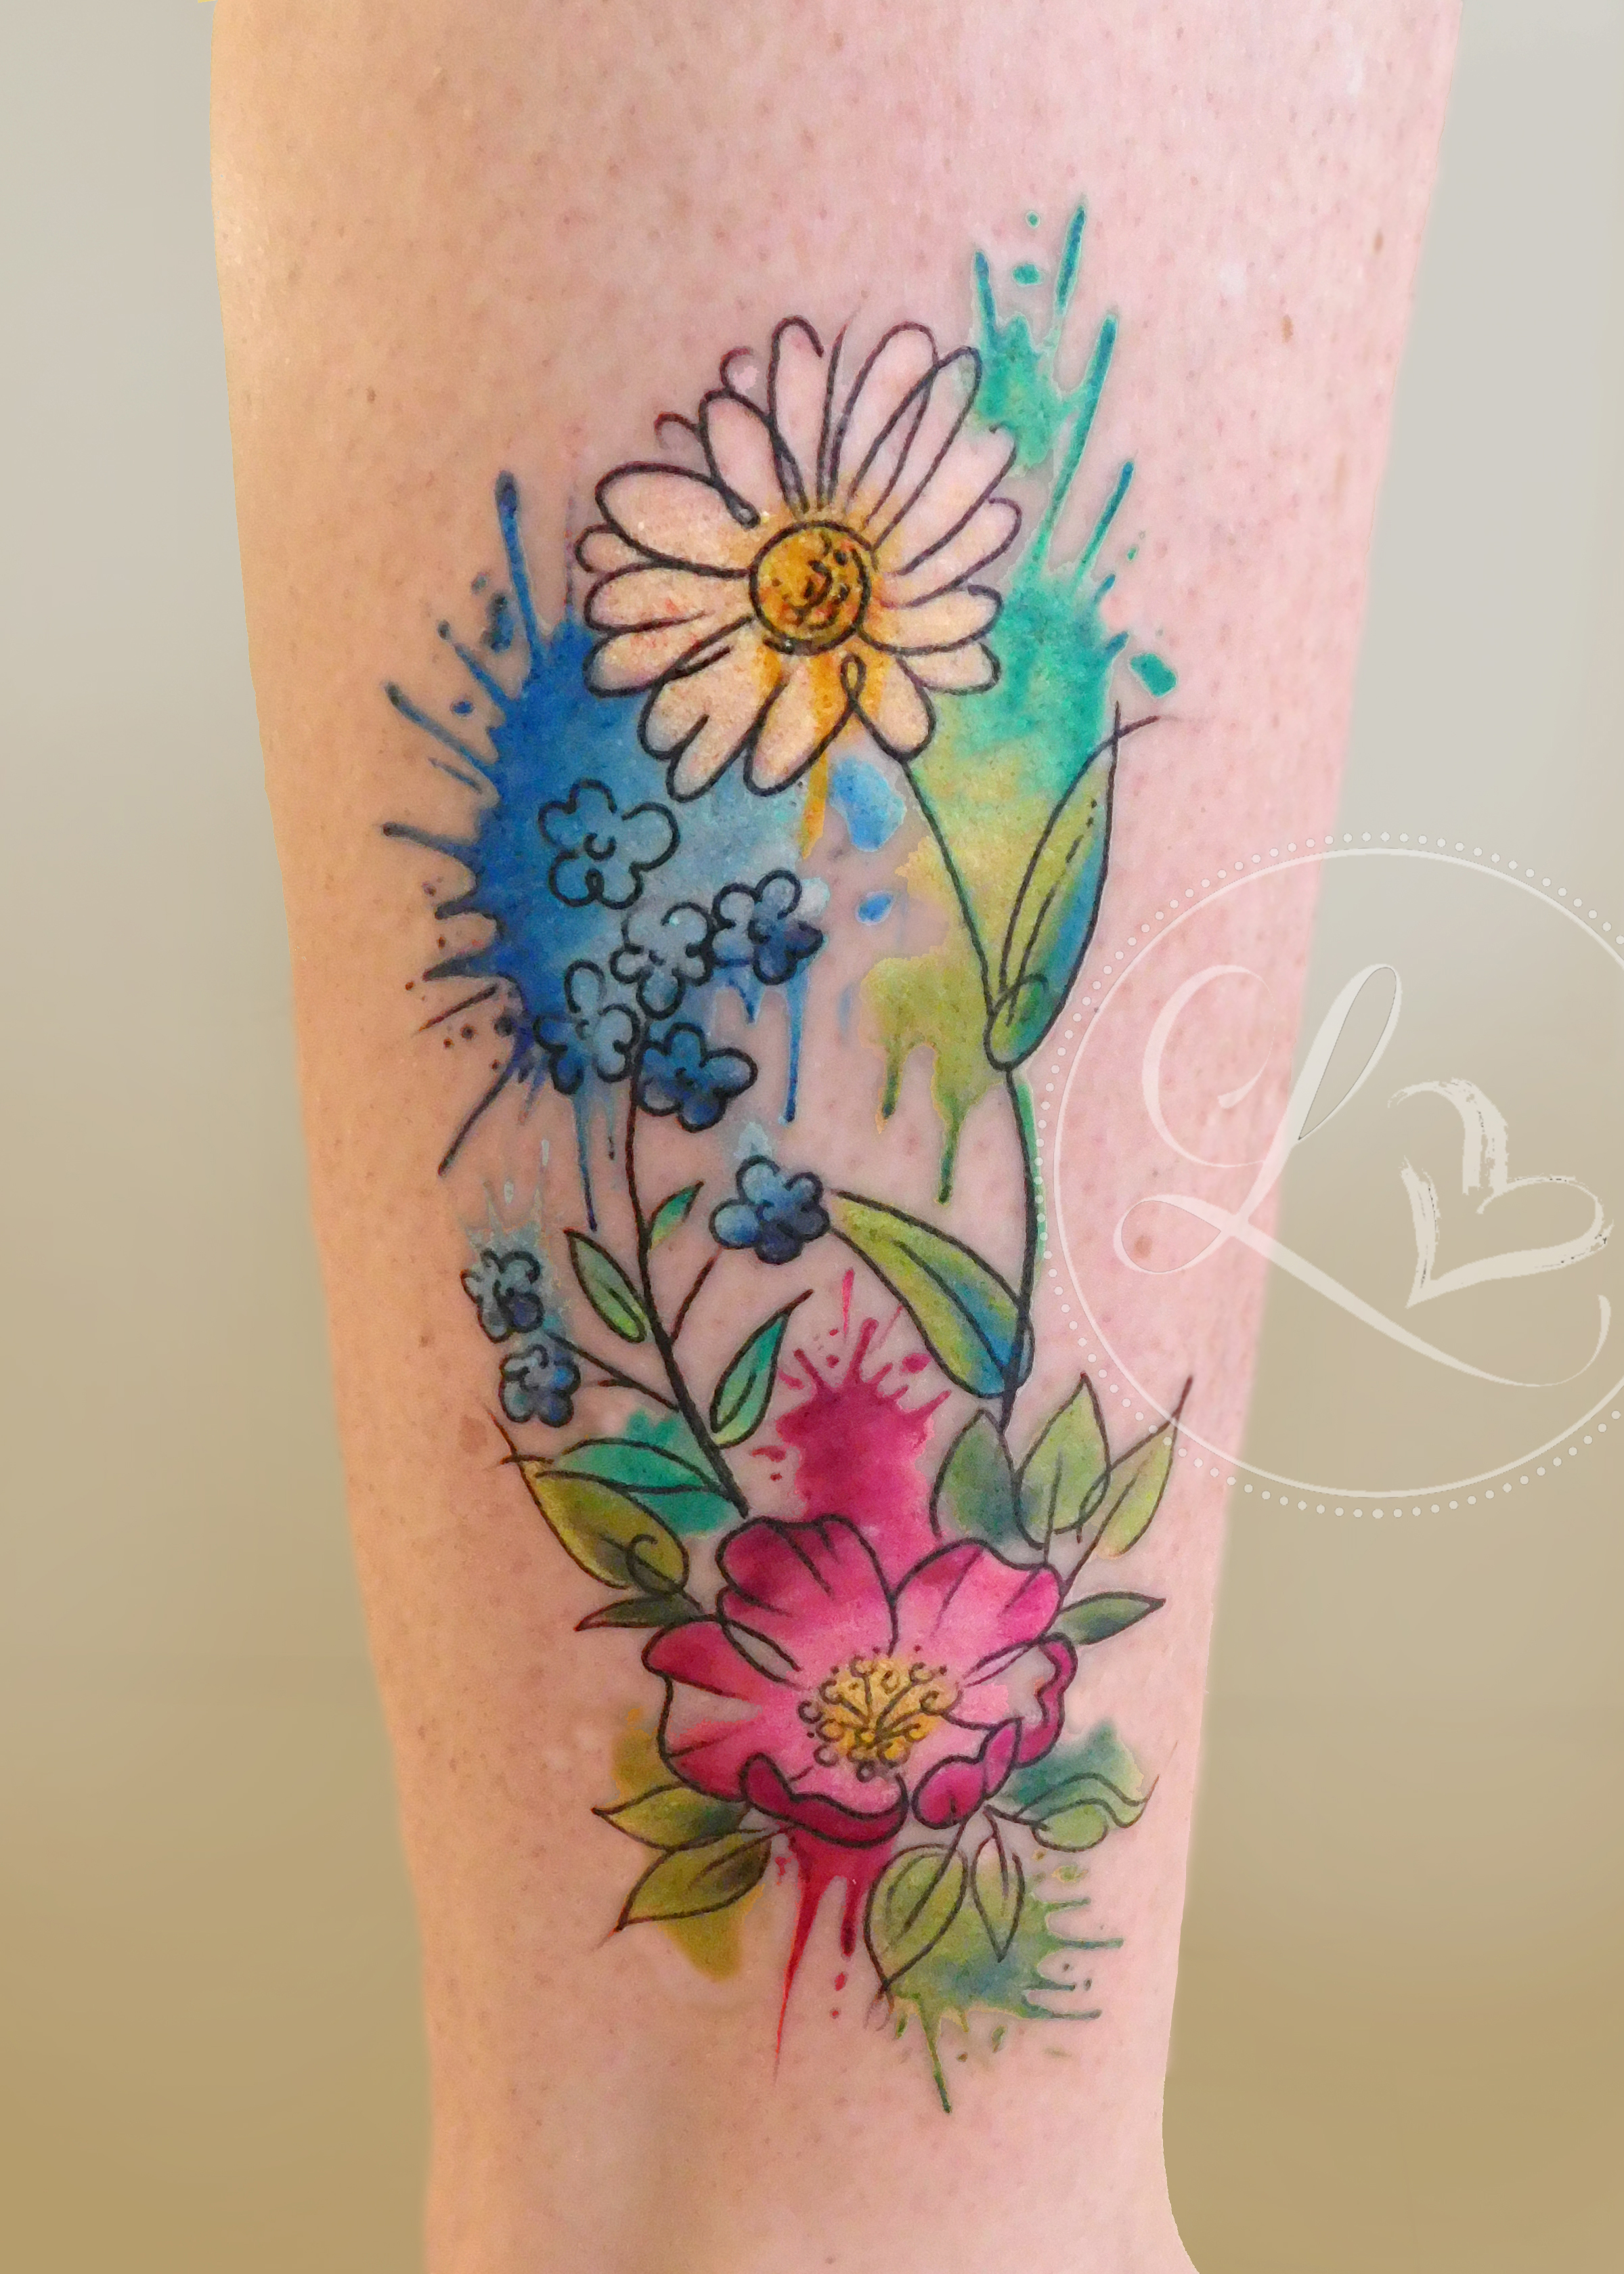 Watercolor style colorful floral bouquet on a leg featuring a daisy, forget me not, and dogwood rose